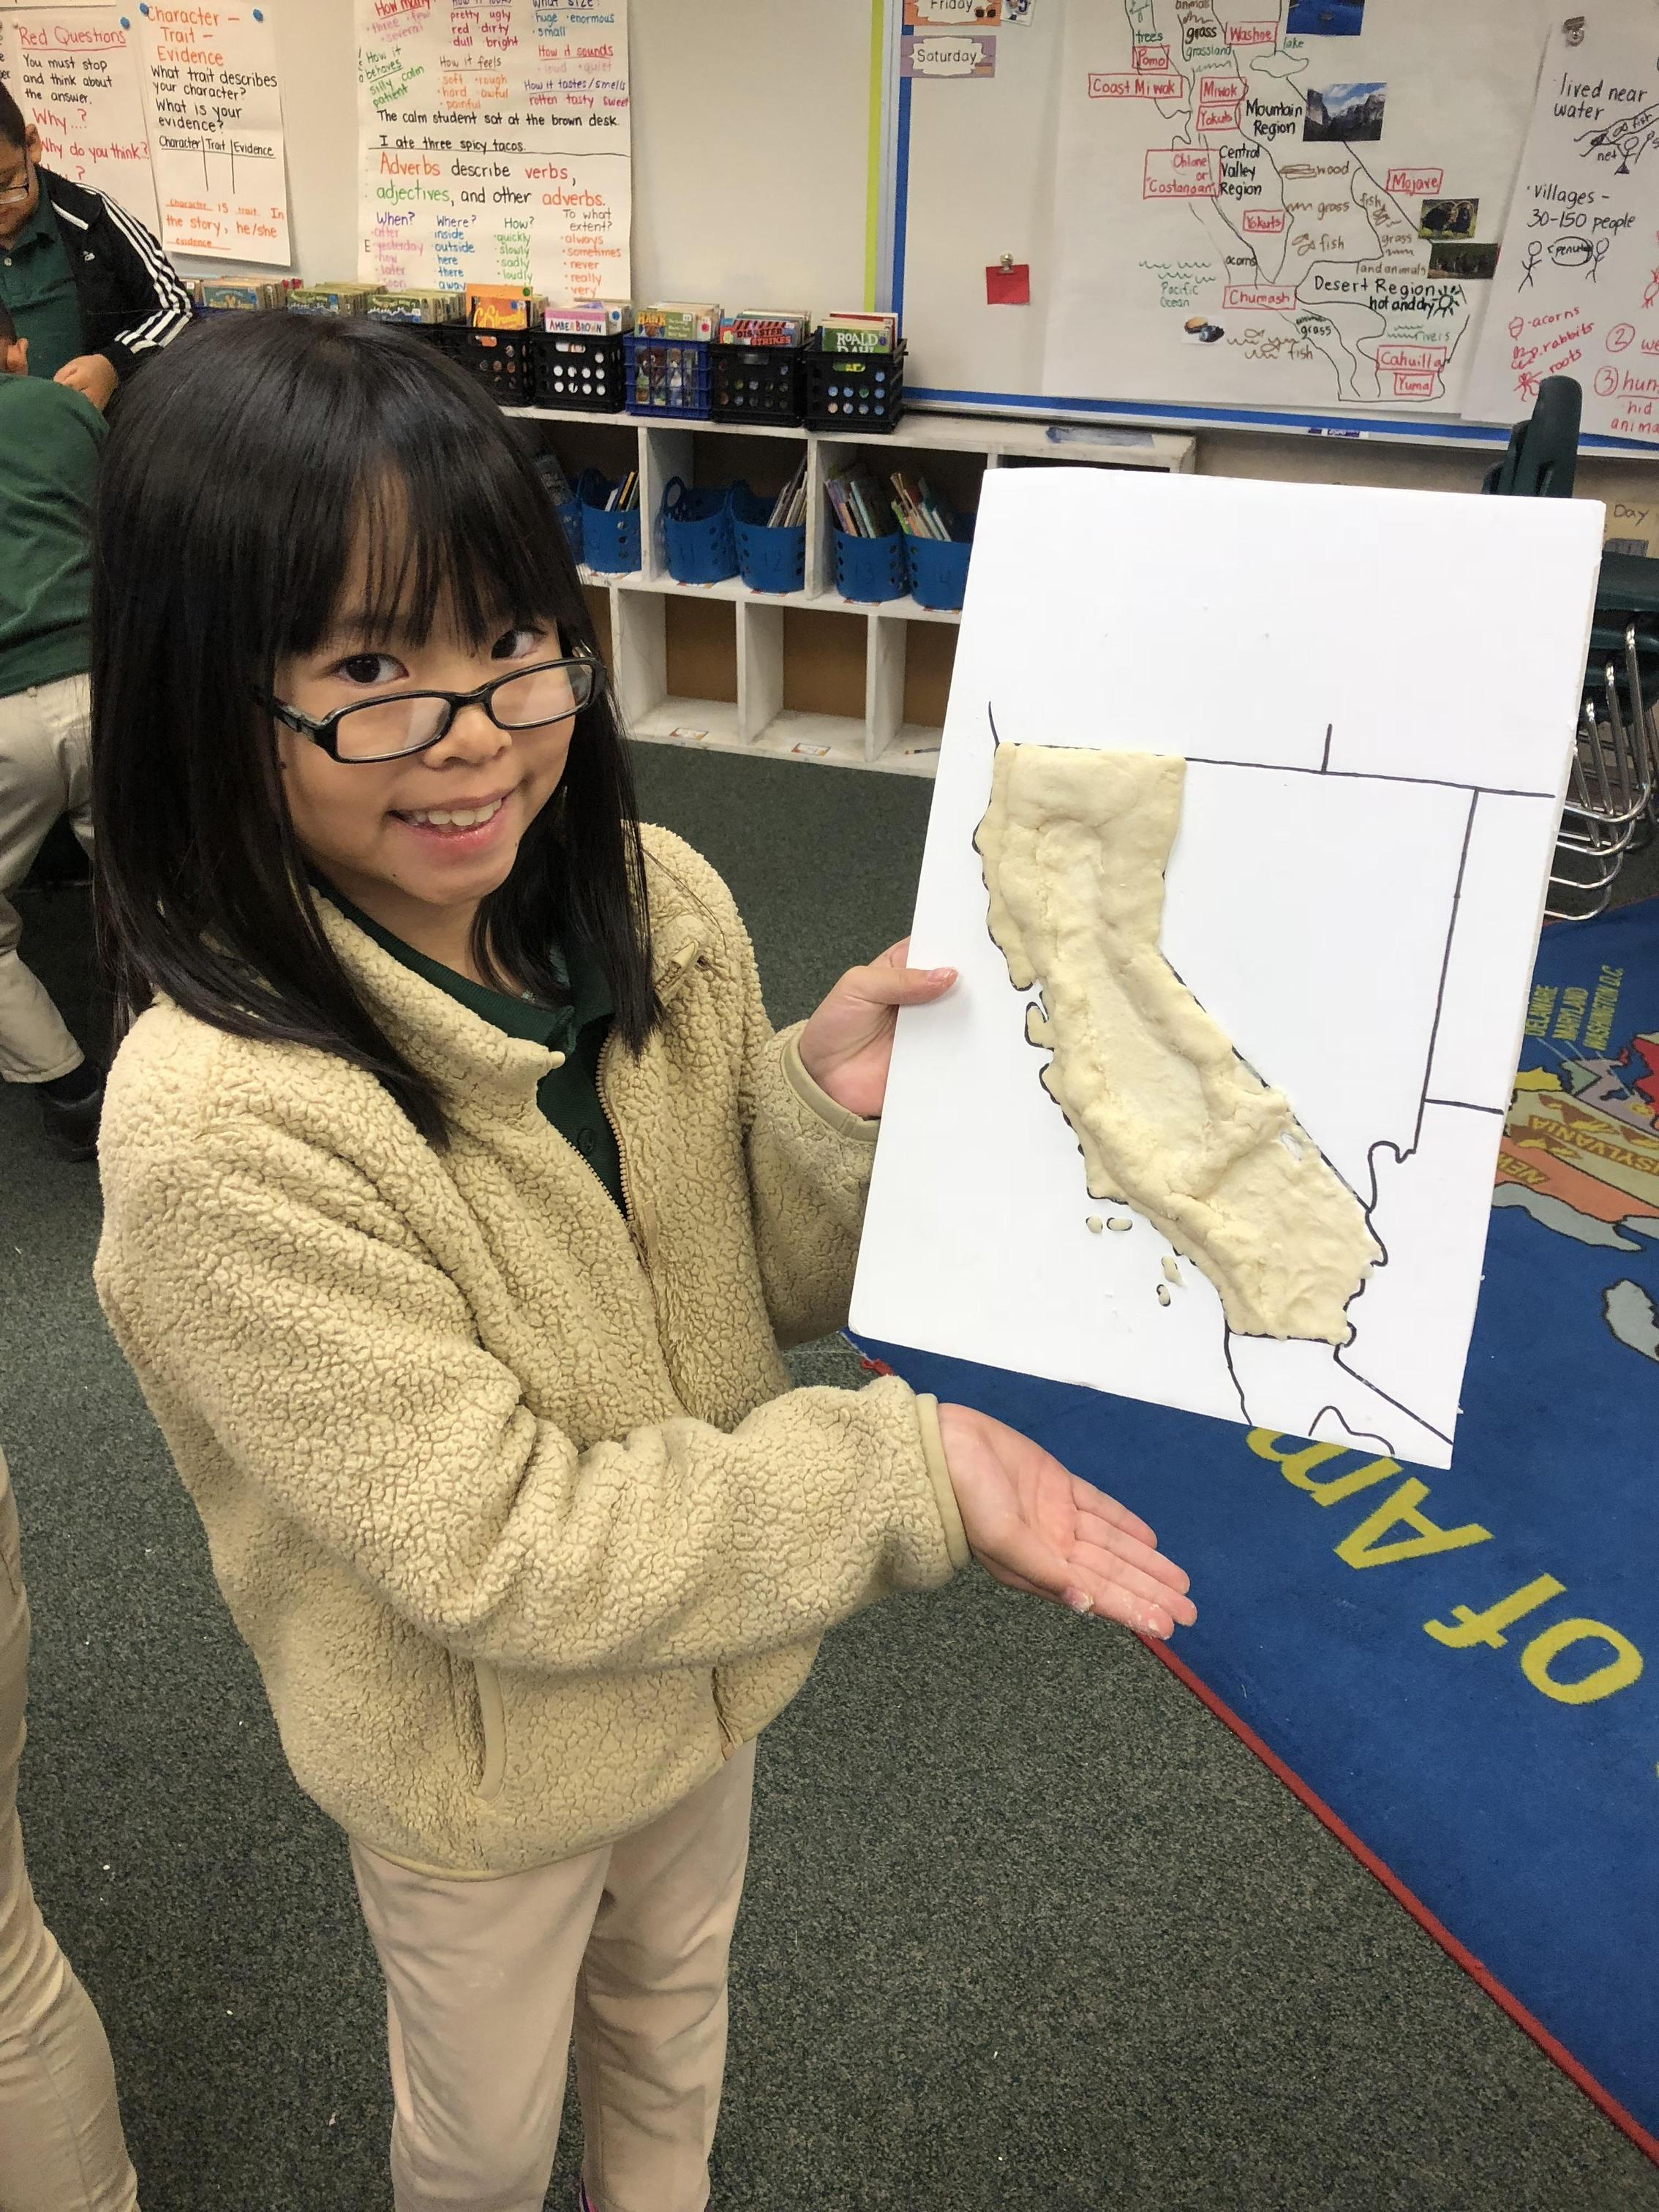 A student and her completed map